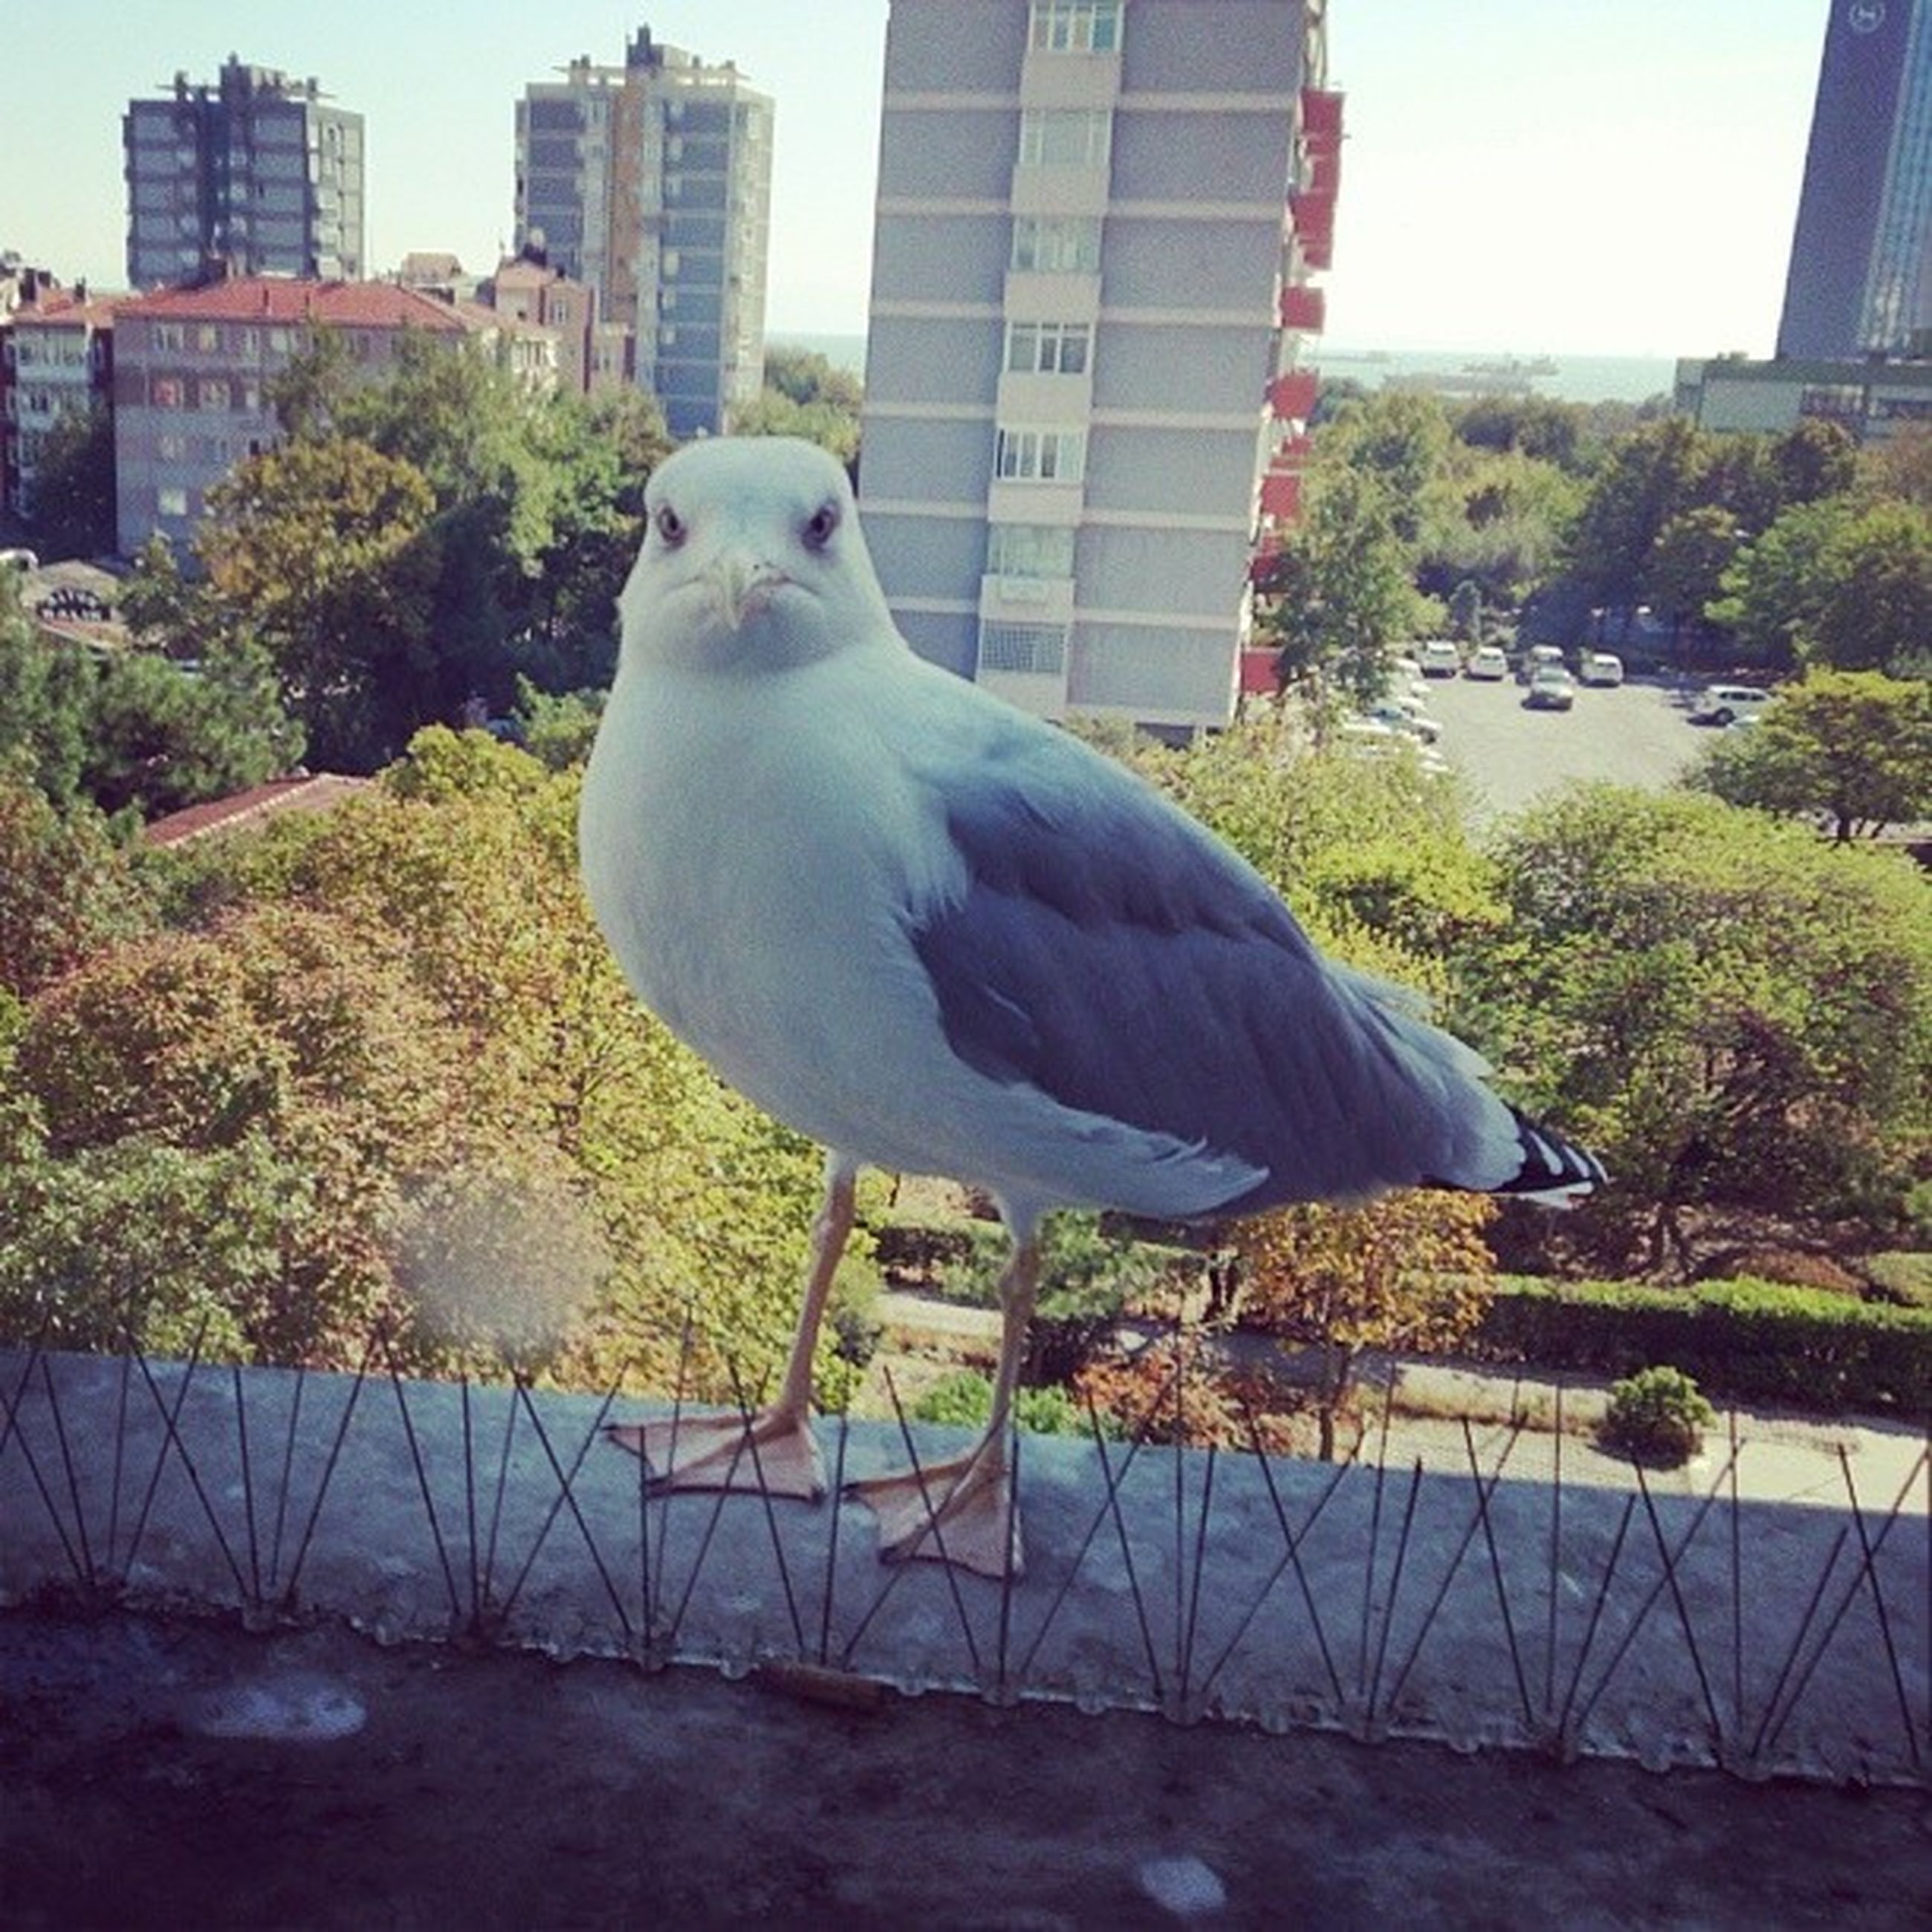 bird, animal themes, one animal, animals in the wild, wildlife, perching, building exterior, built structure, architecture, pigeon, seagull, full length, city, beak, tree, day, outdoors, feather, side view, no people